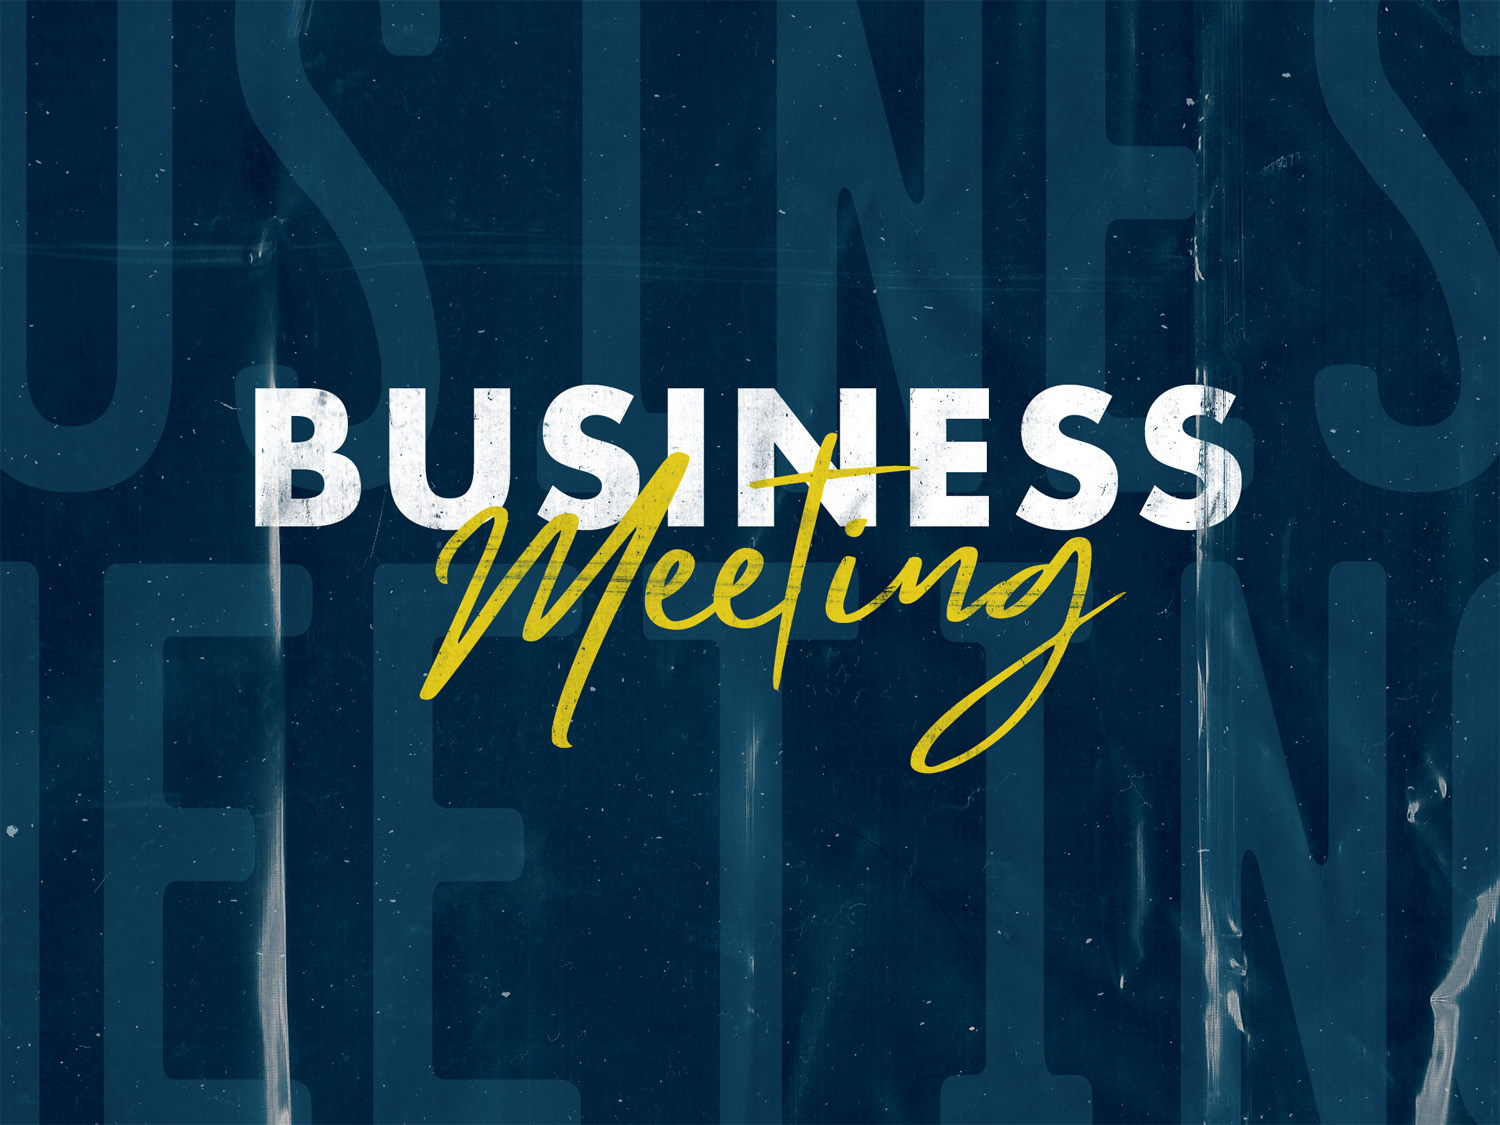 business_meeting-title-2-Standard 4x3 image